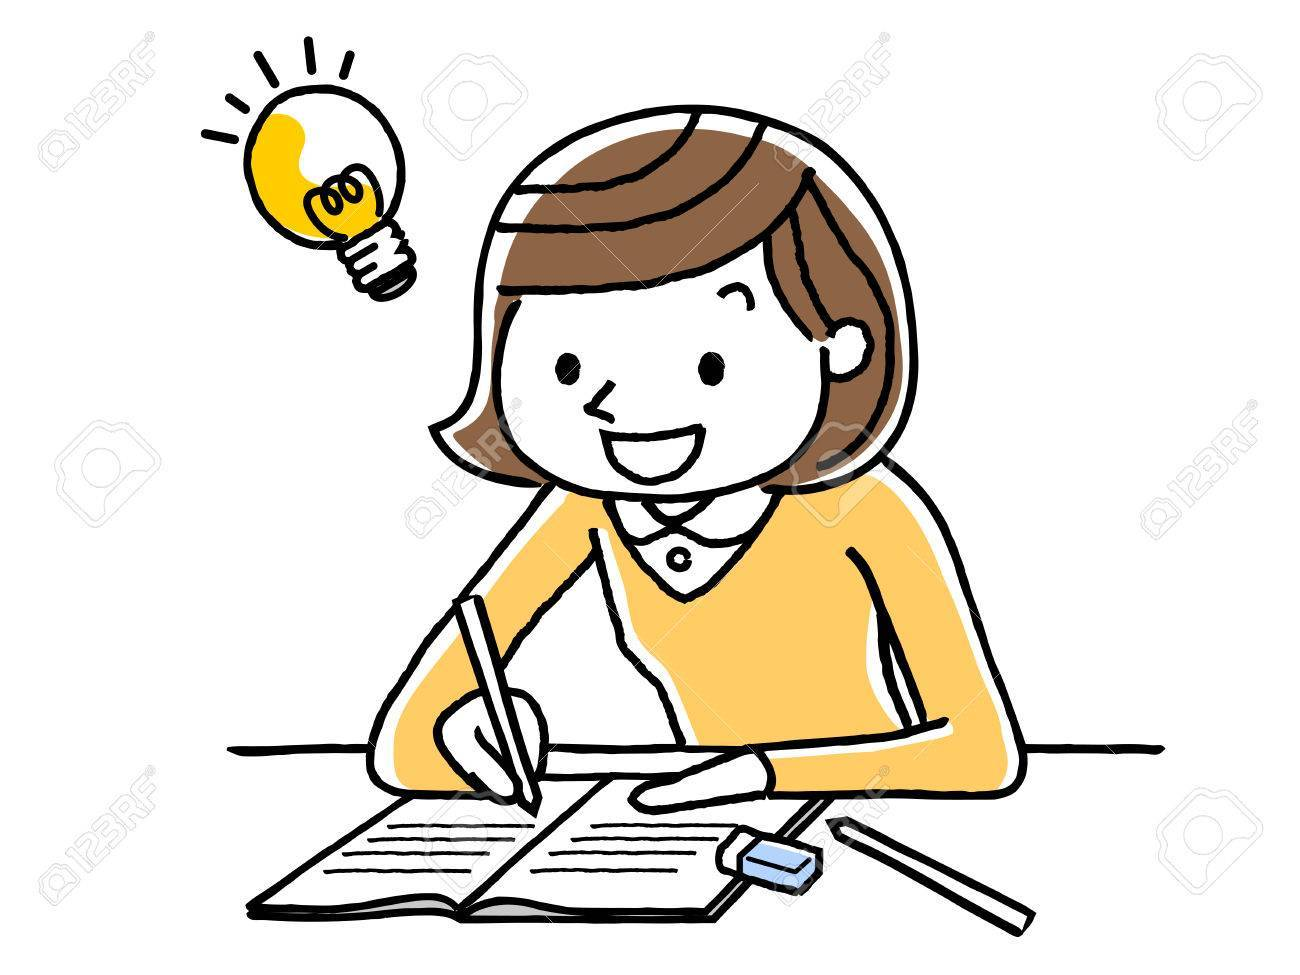 Person studying clipart 5 » Clipart Portal.